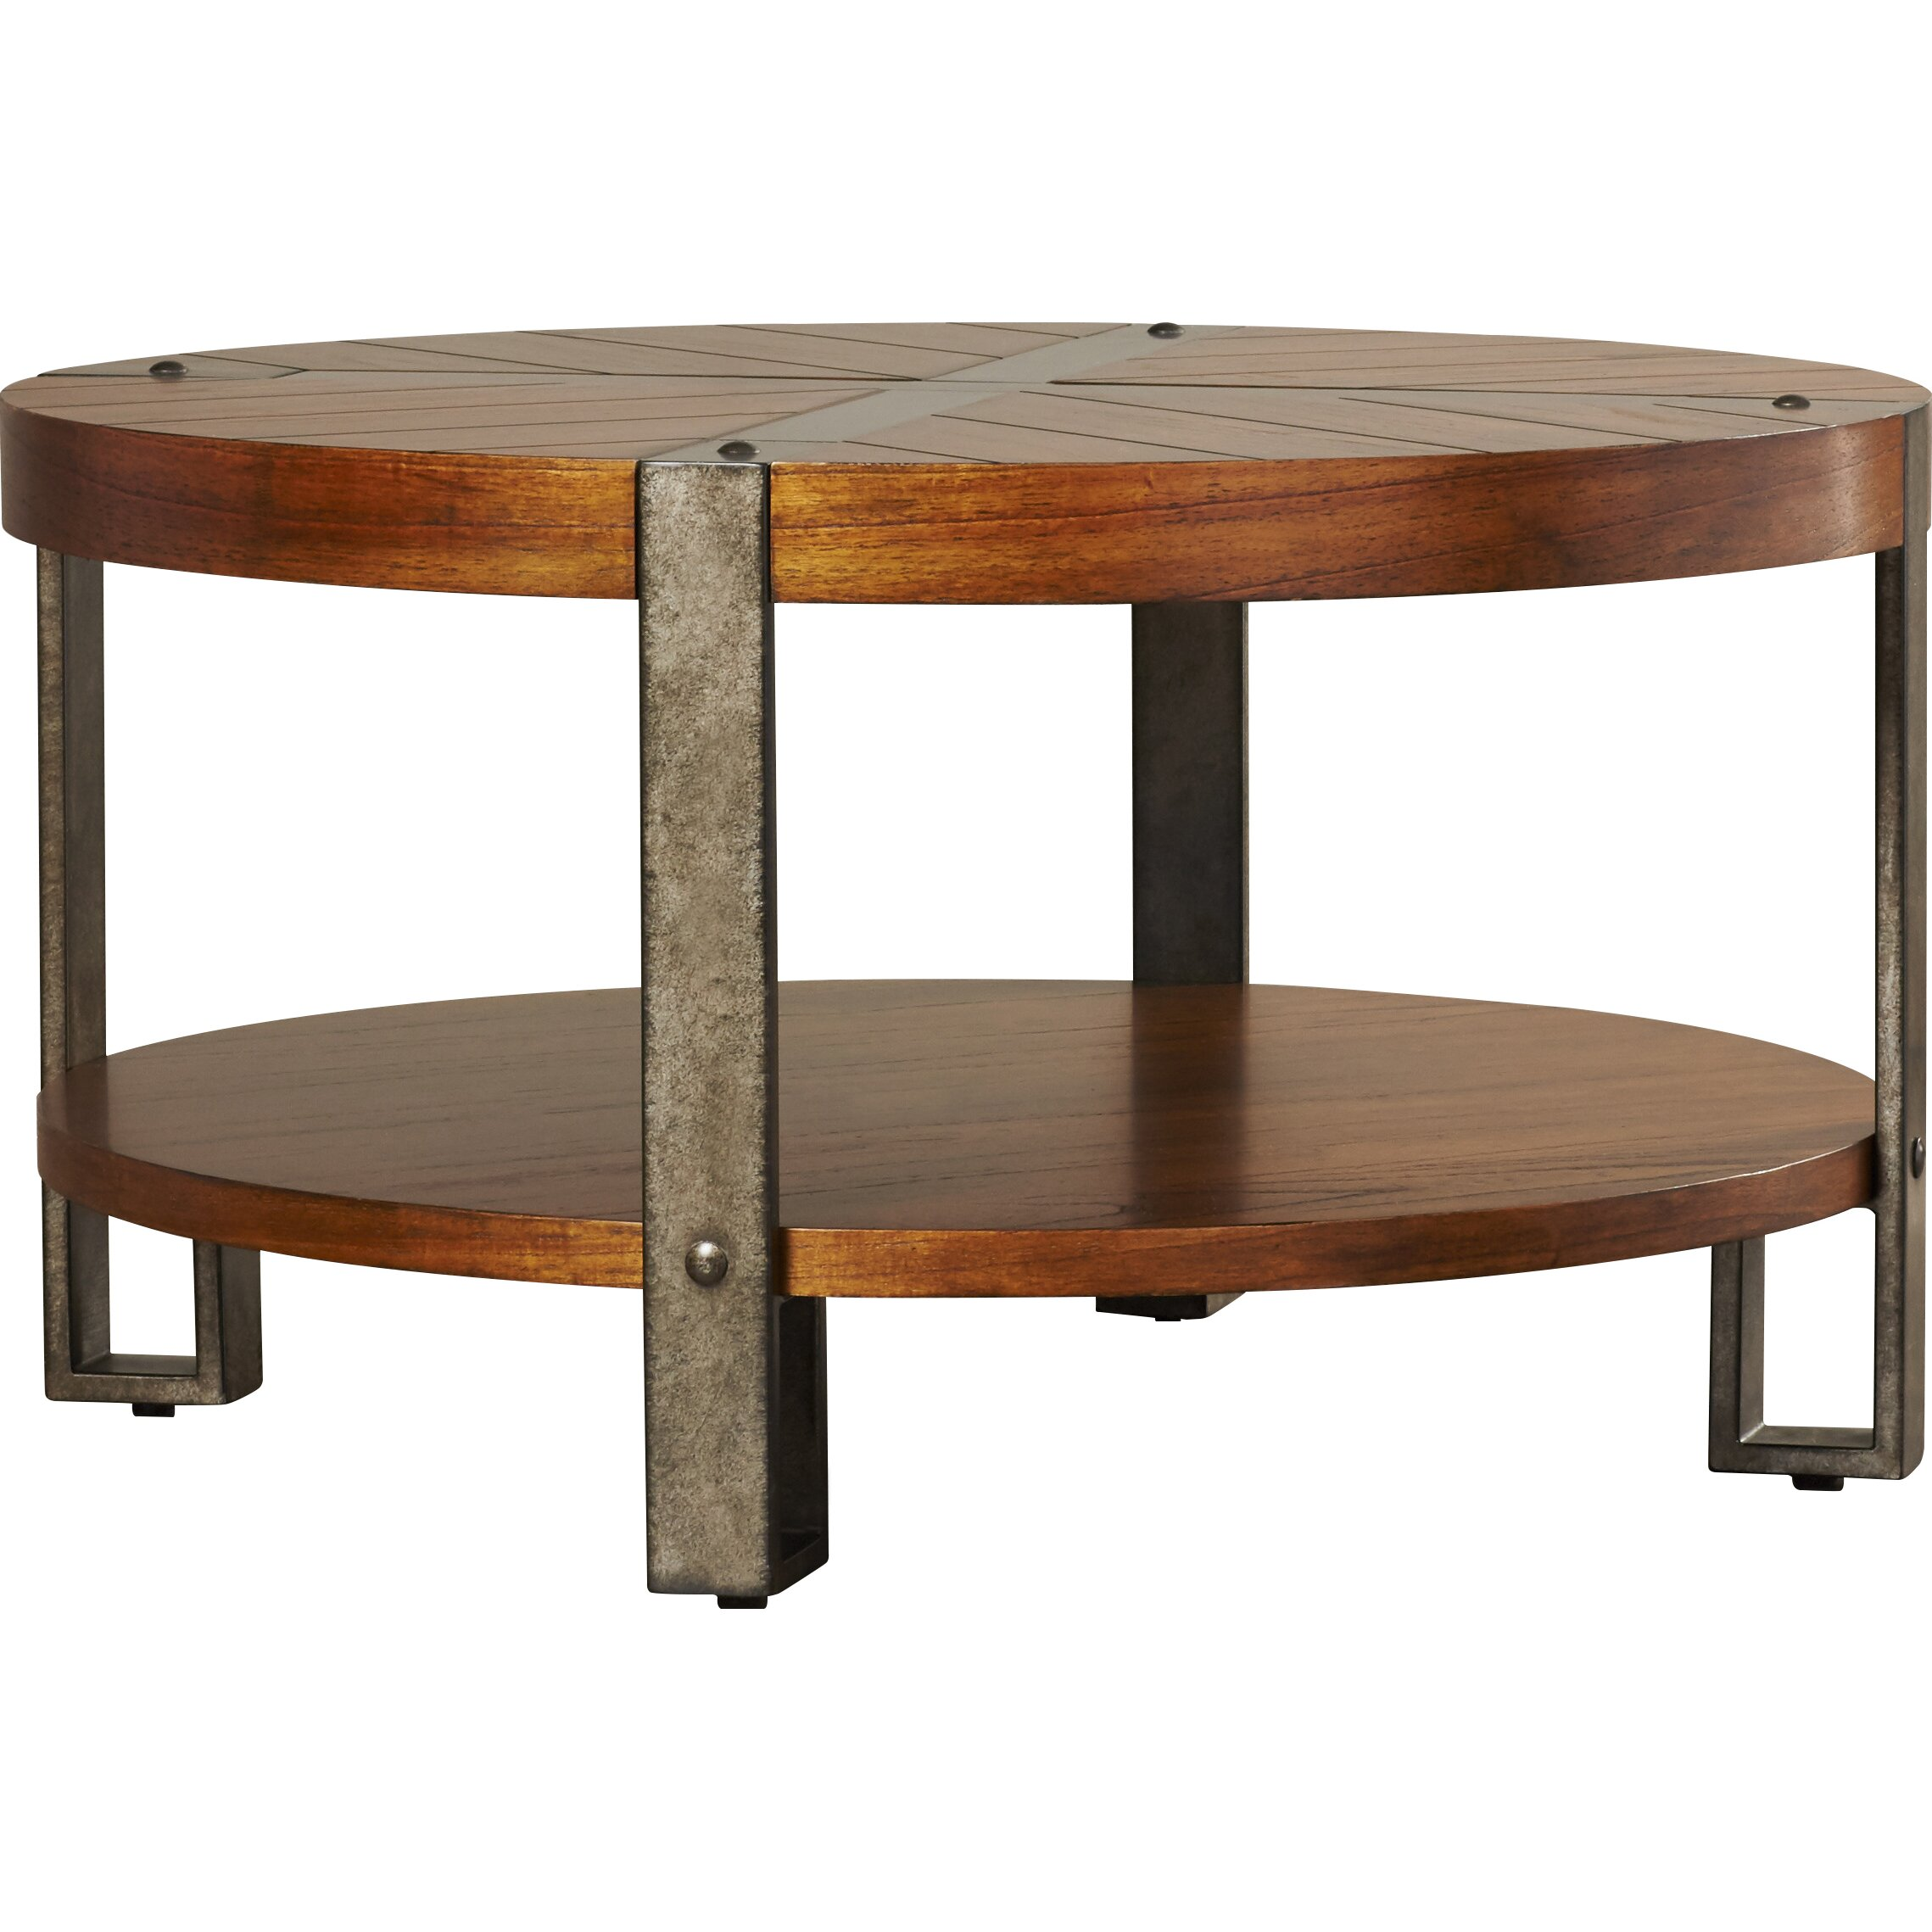 Loon Peak Gallatin Round Coffee Table & Reviews | Wayfair